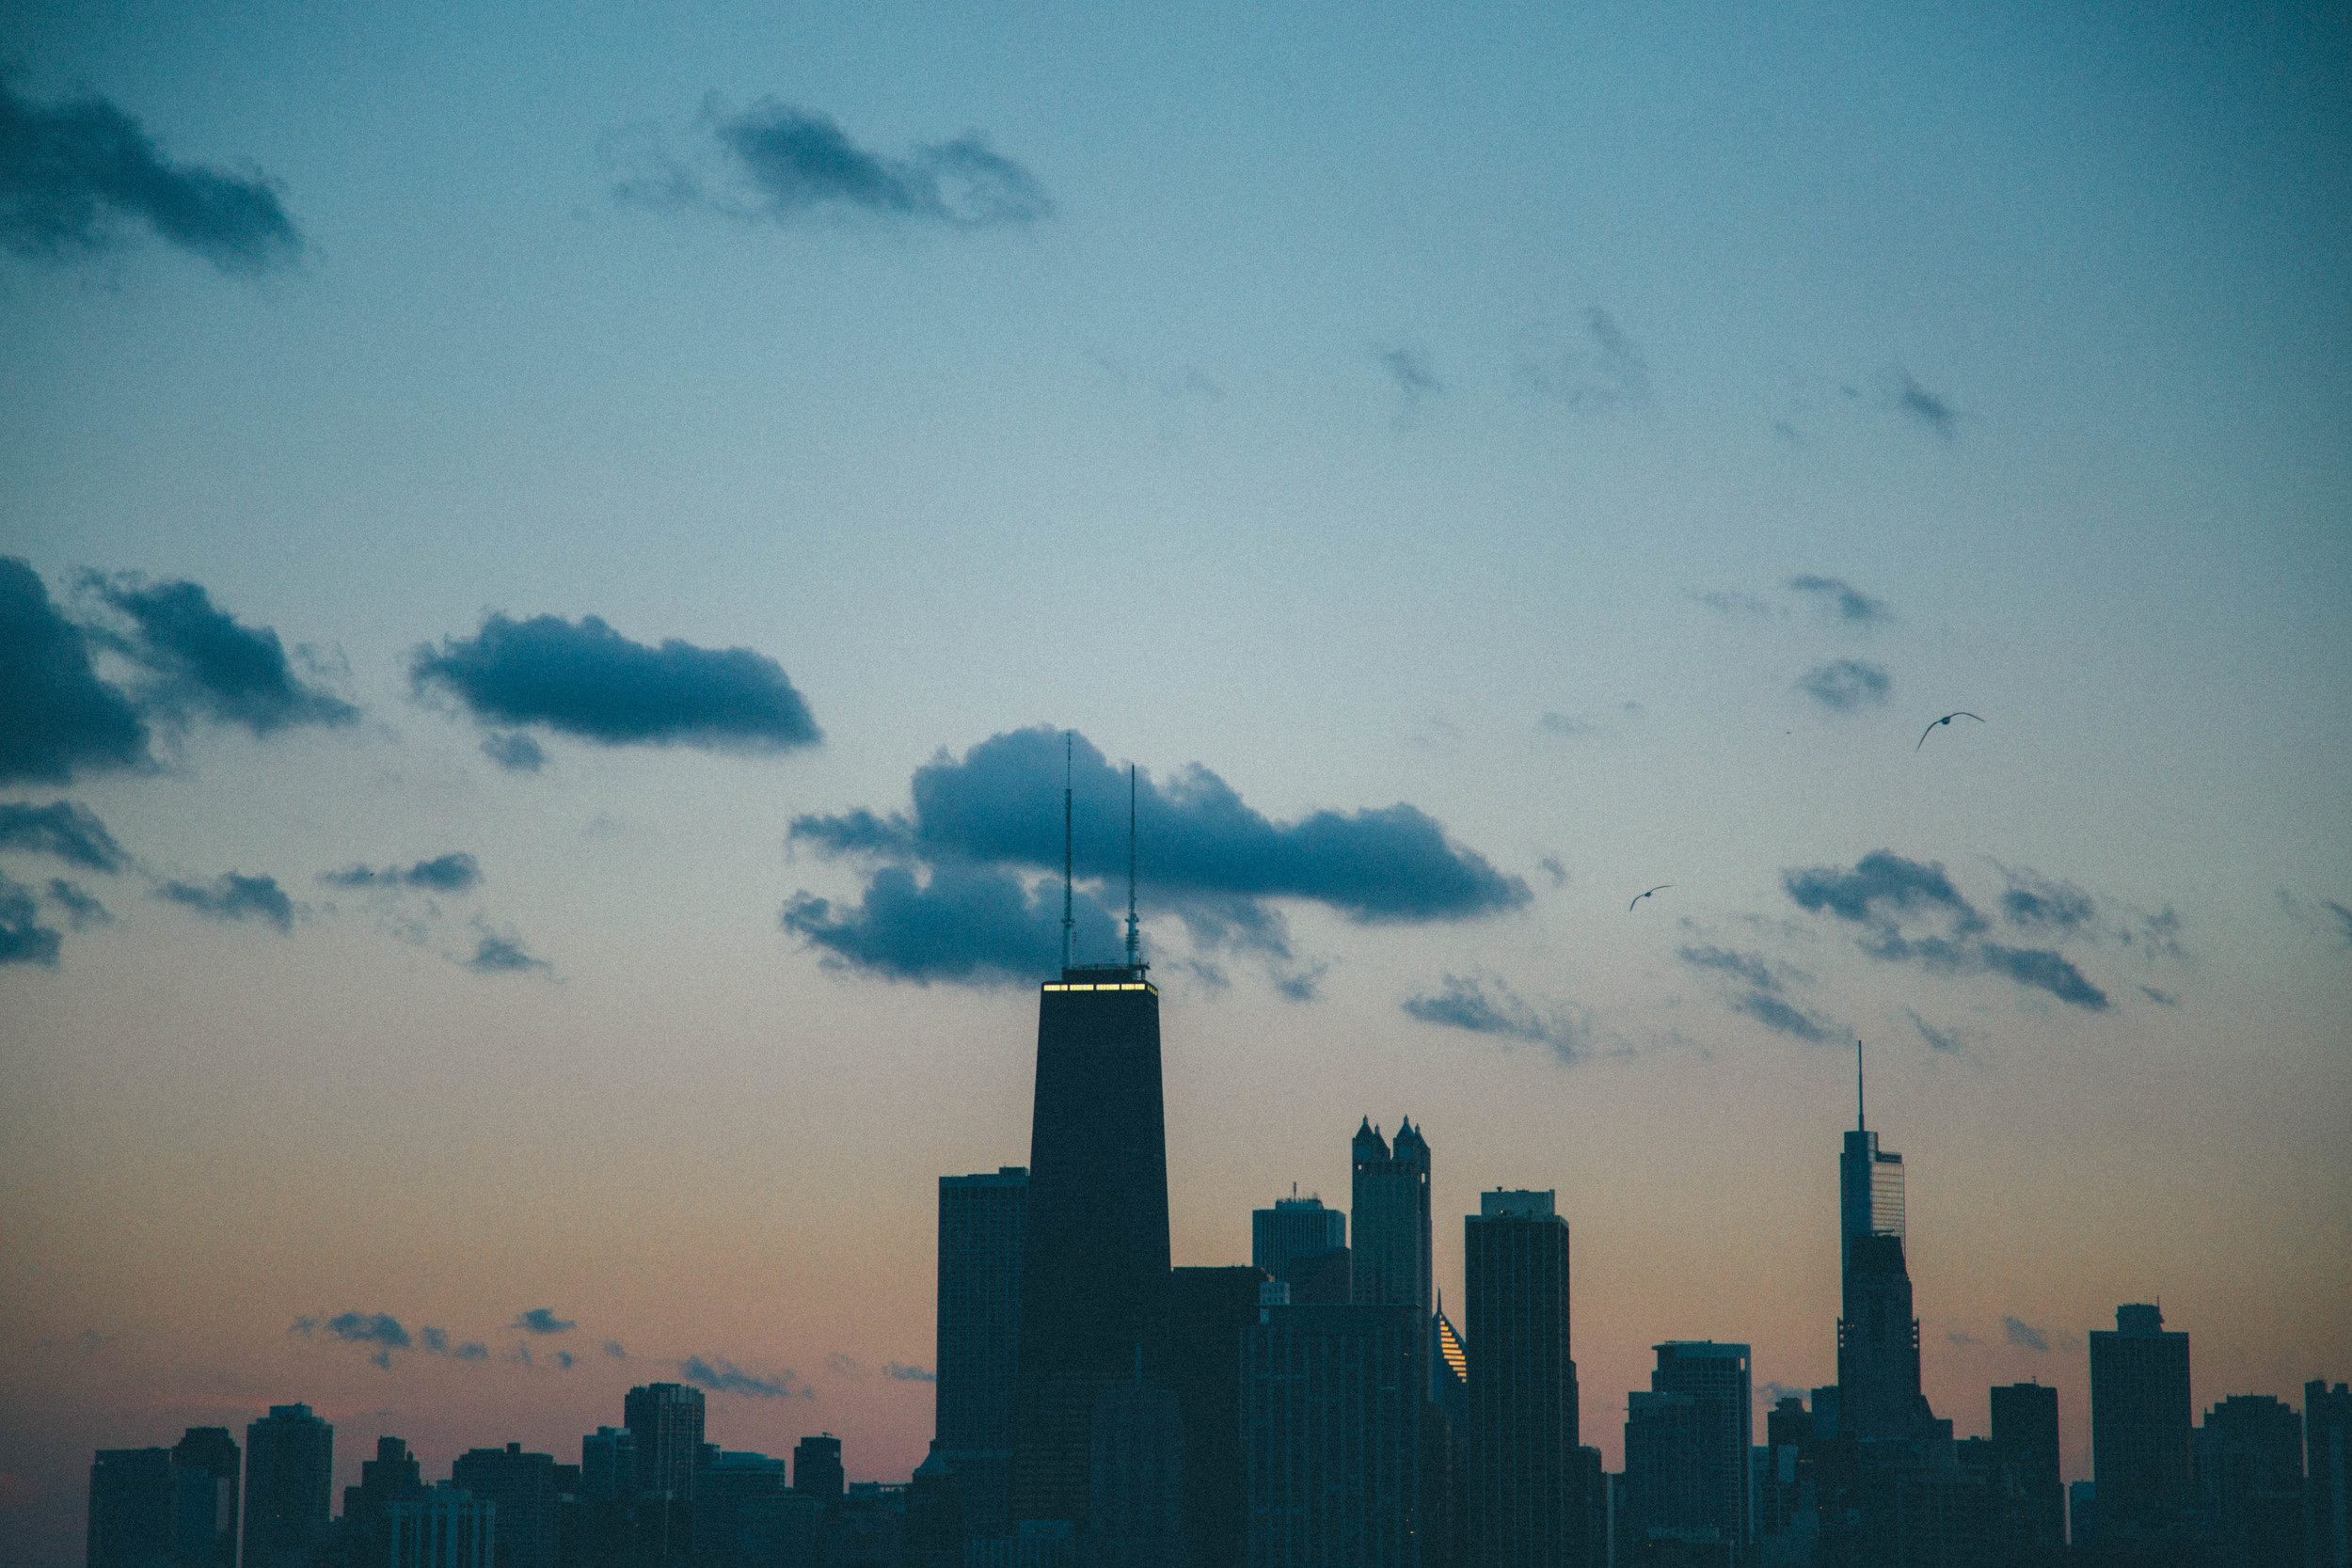 A Chicago sunset...